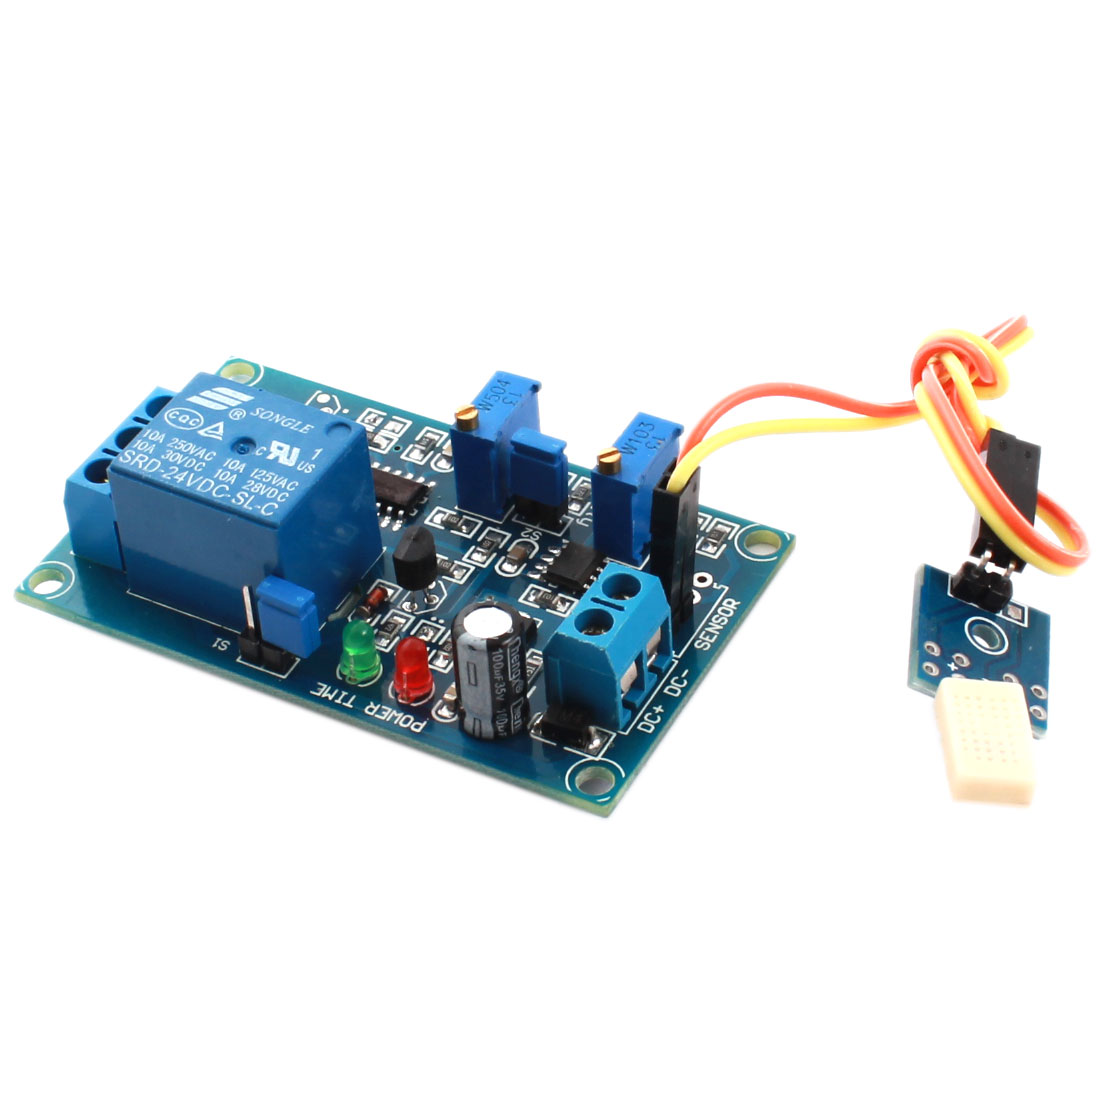 DC24V 2-LED Lamp 1 Way Humidity Sensitivity Sensor Time Delay Relay Module